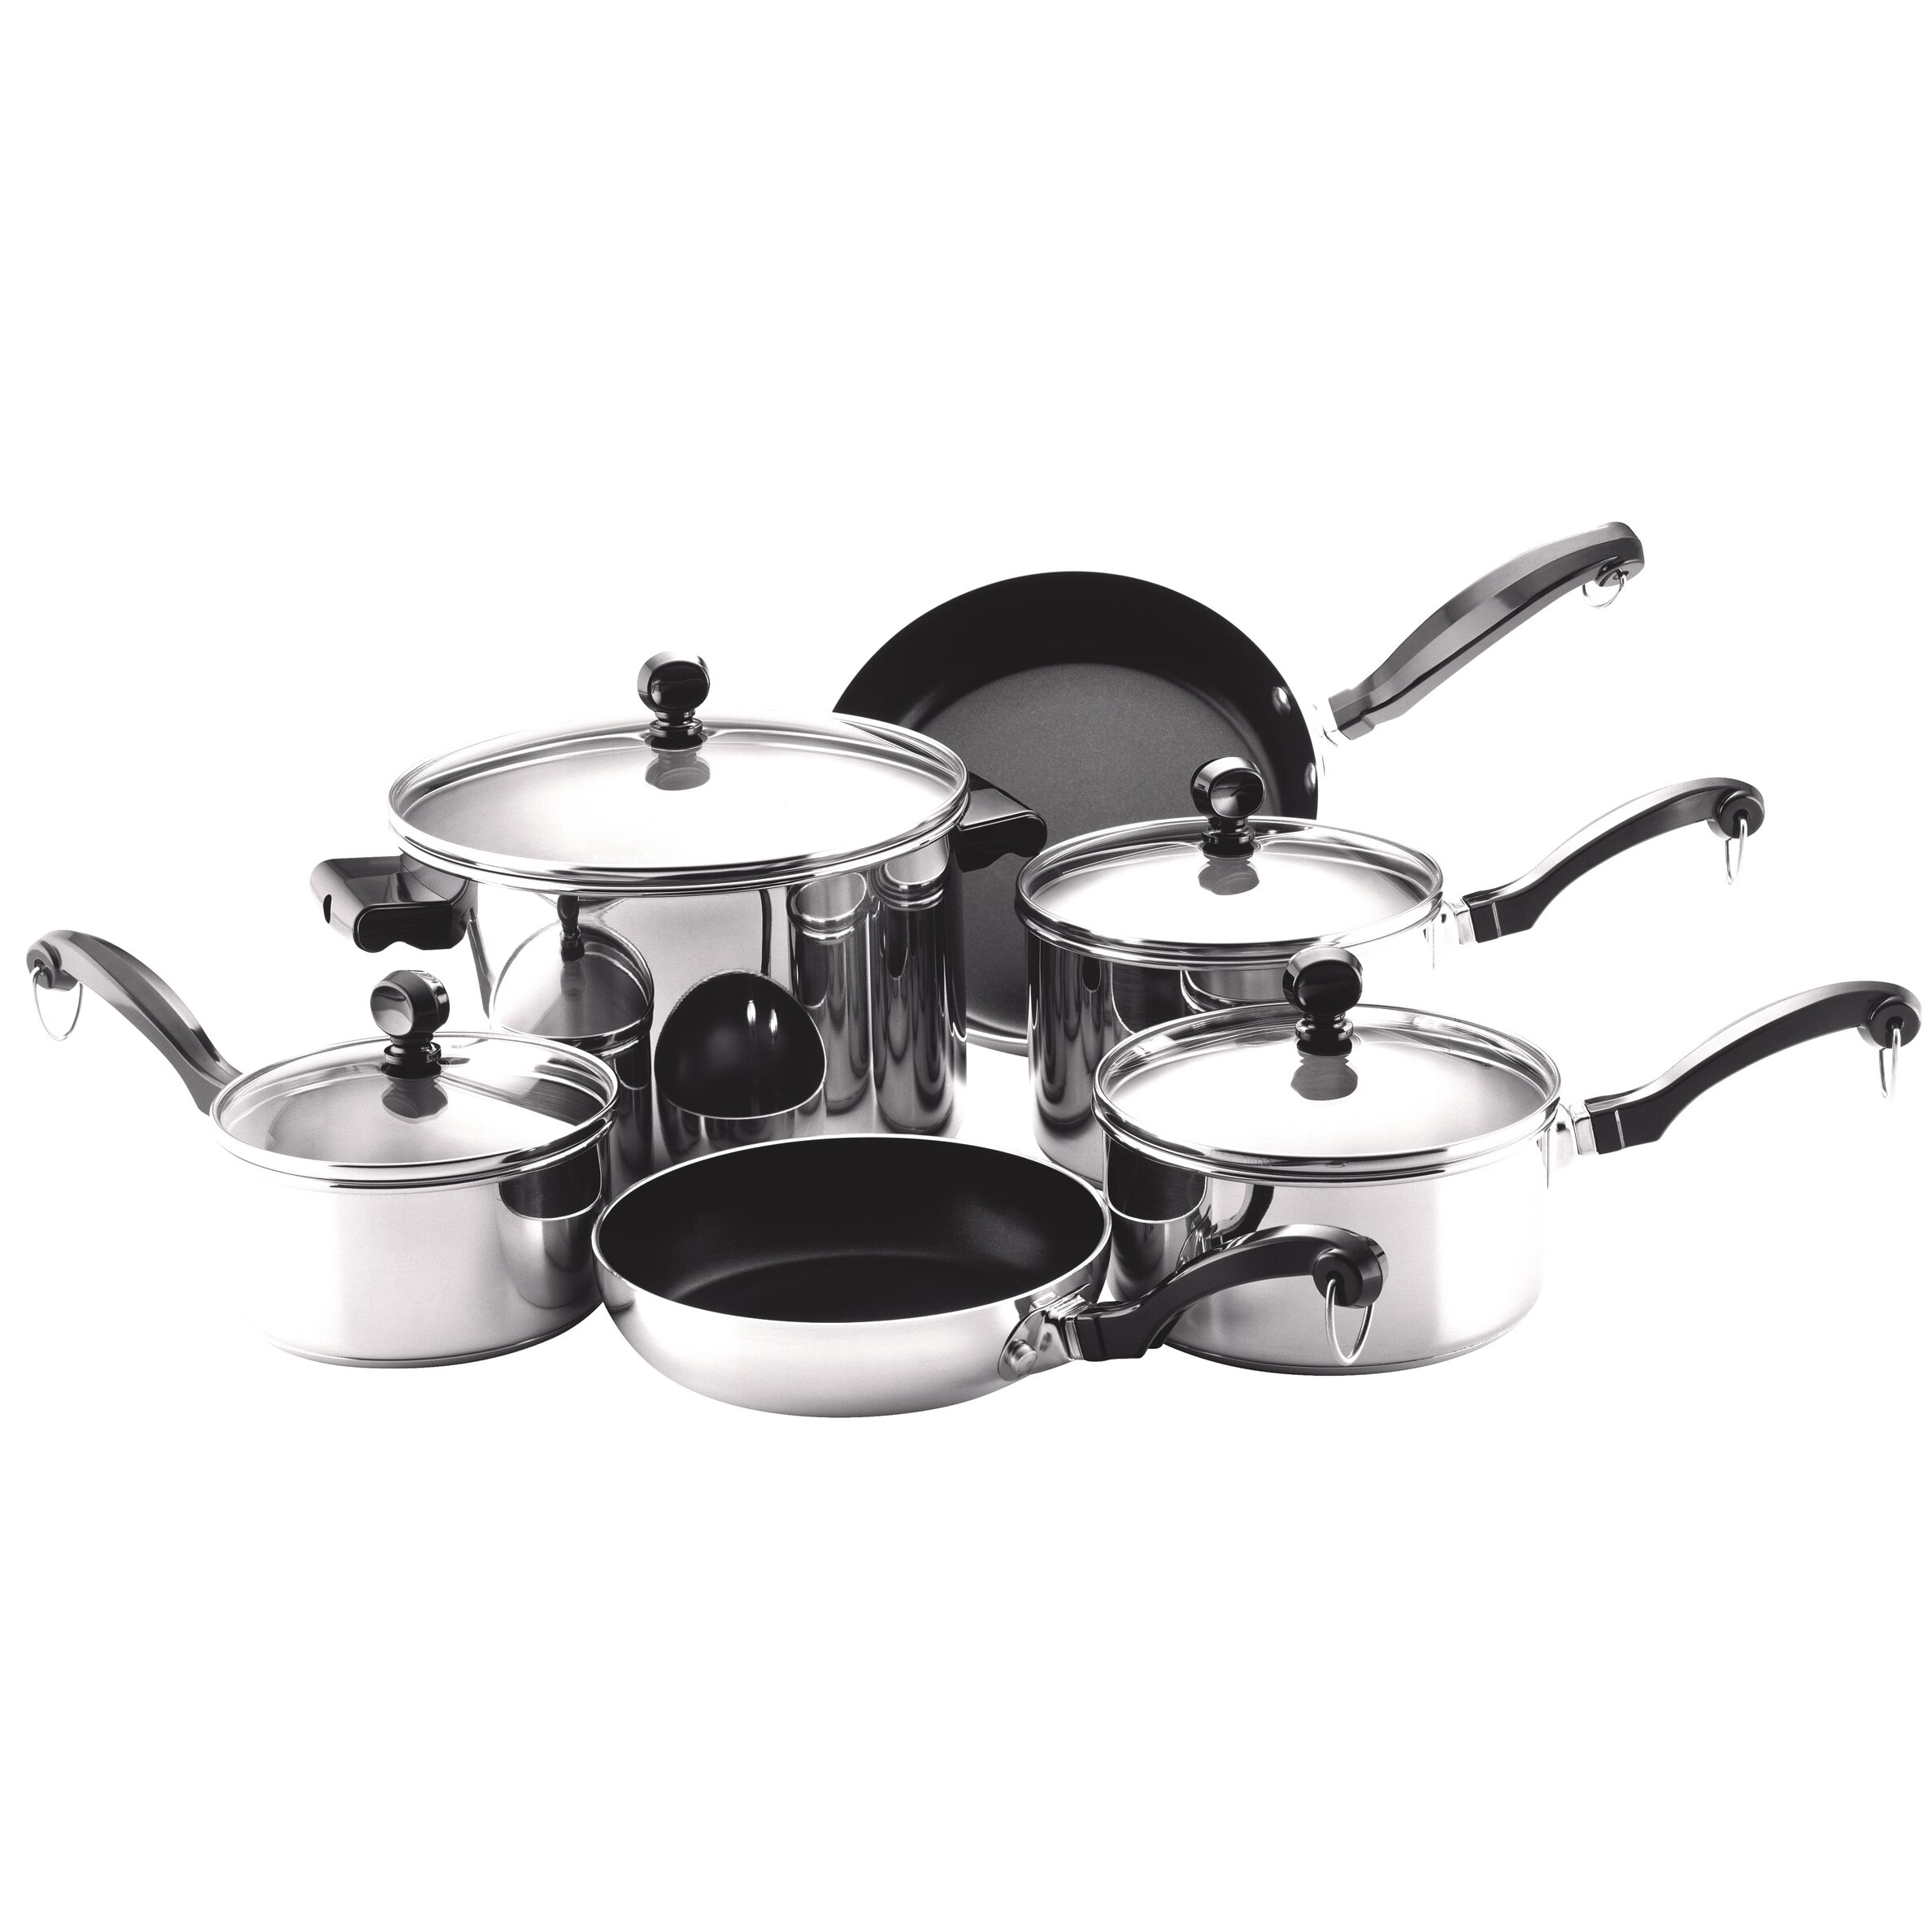 Farberware Classic Stainless Steel 10 Piece Cookware Set ...